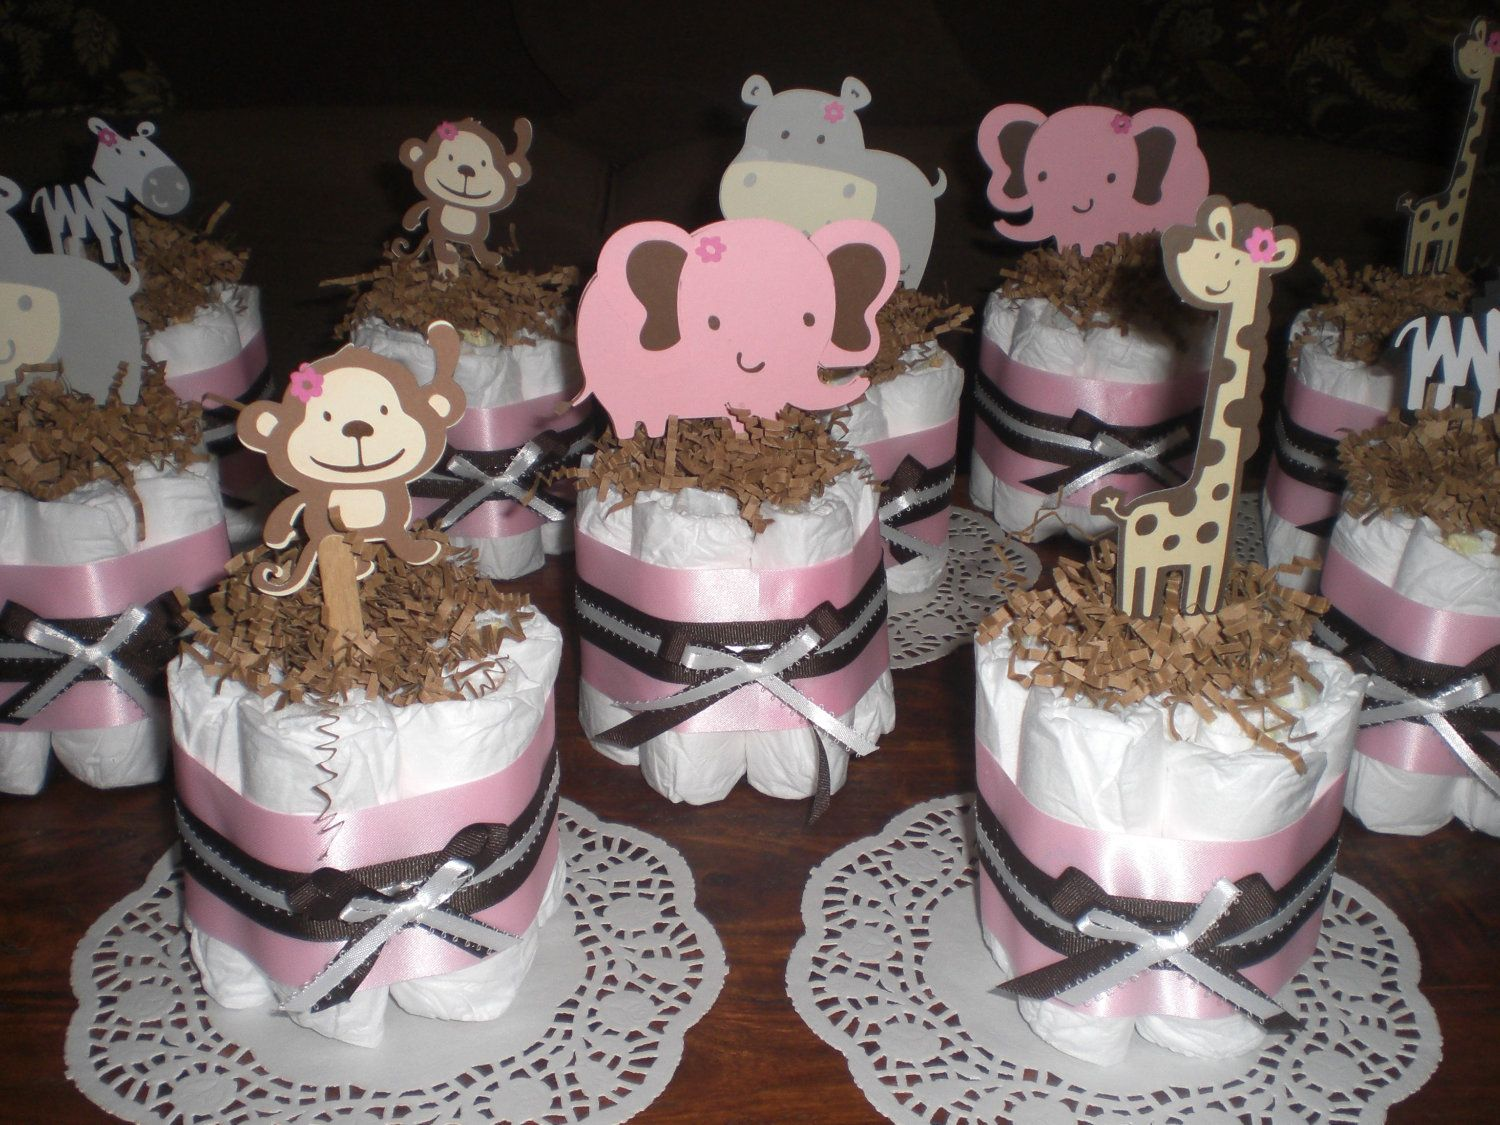 Winnie the pooh baby shower centerpiece ideas 48pc baby shower winnie - Safari Jungle Girl And Monkey Diaper Cakes Baby Shower Centerpieces Other Colors And Sizes Too